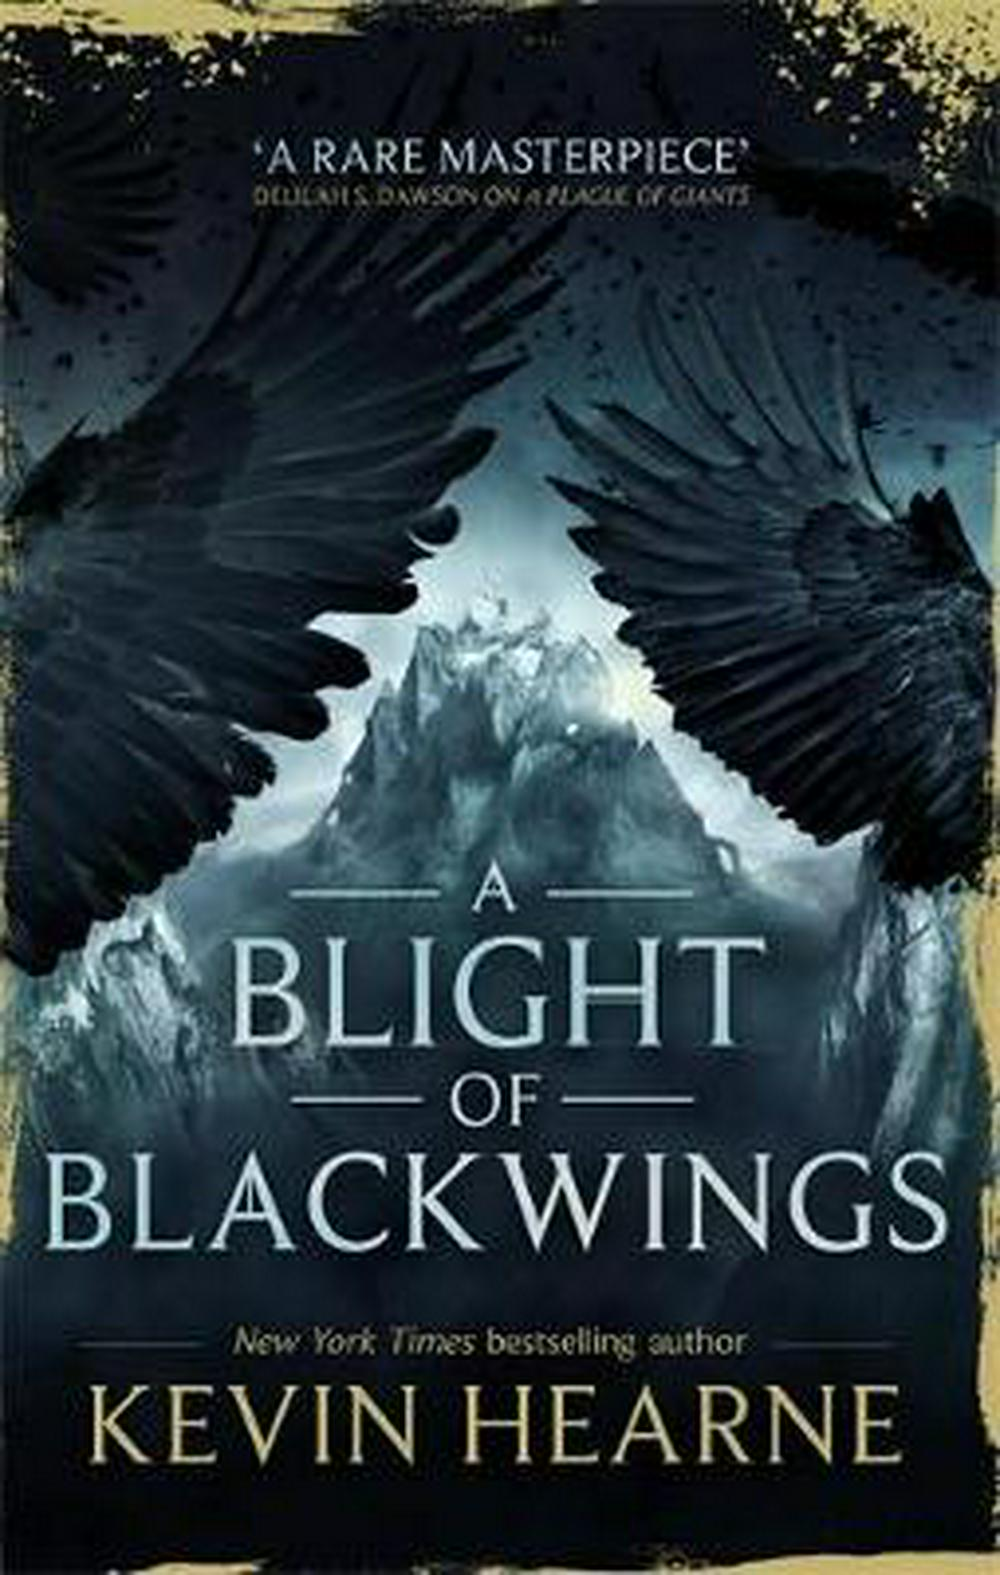 A Blight of Blackwings (Seven Kennings)